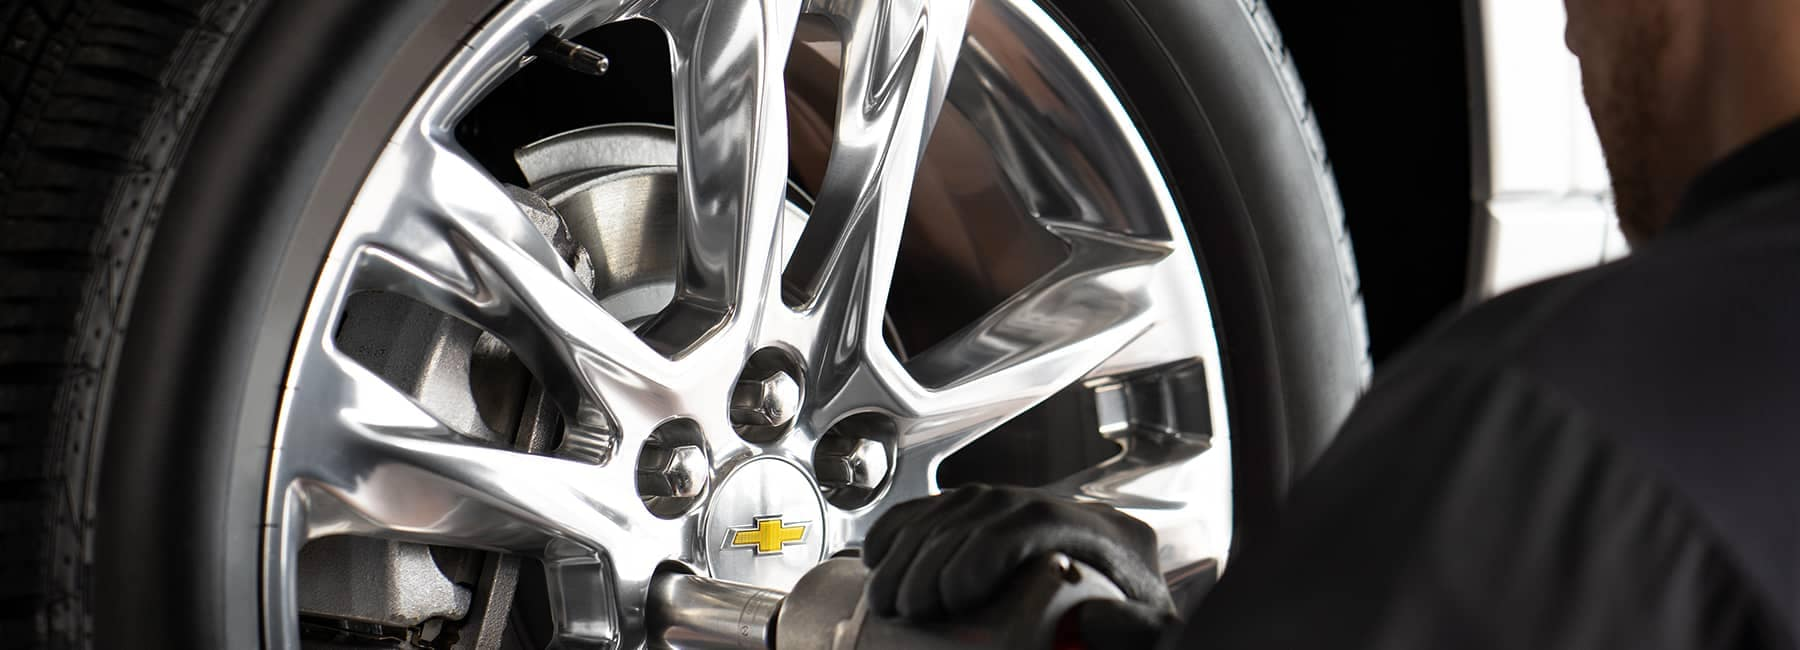 A close up of a Chevrolet emblem on the rim of a tire